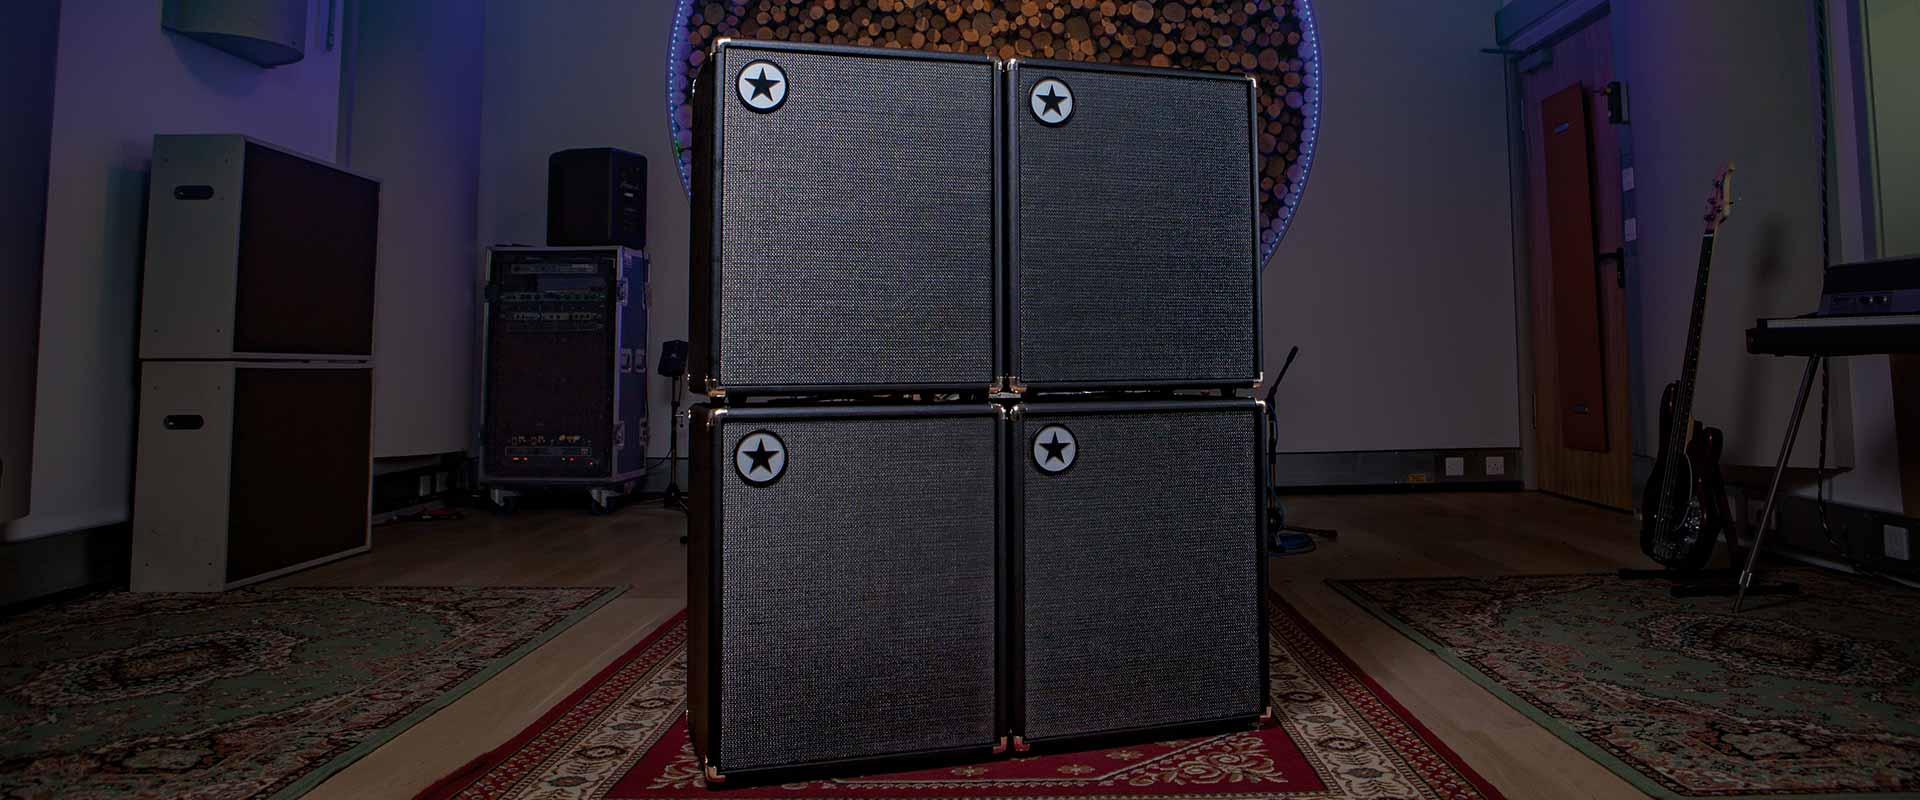 Blackstar Unity Bass Amp stack